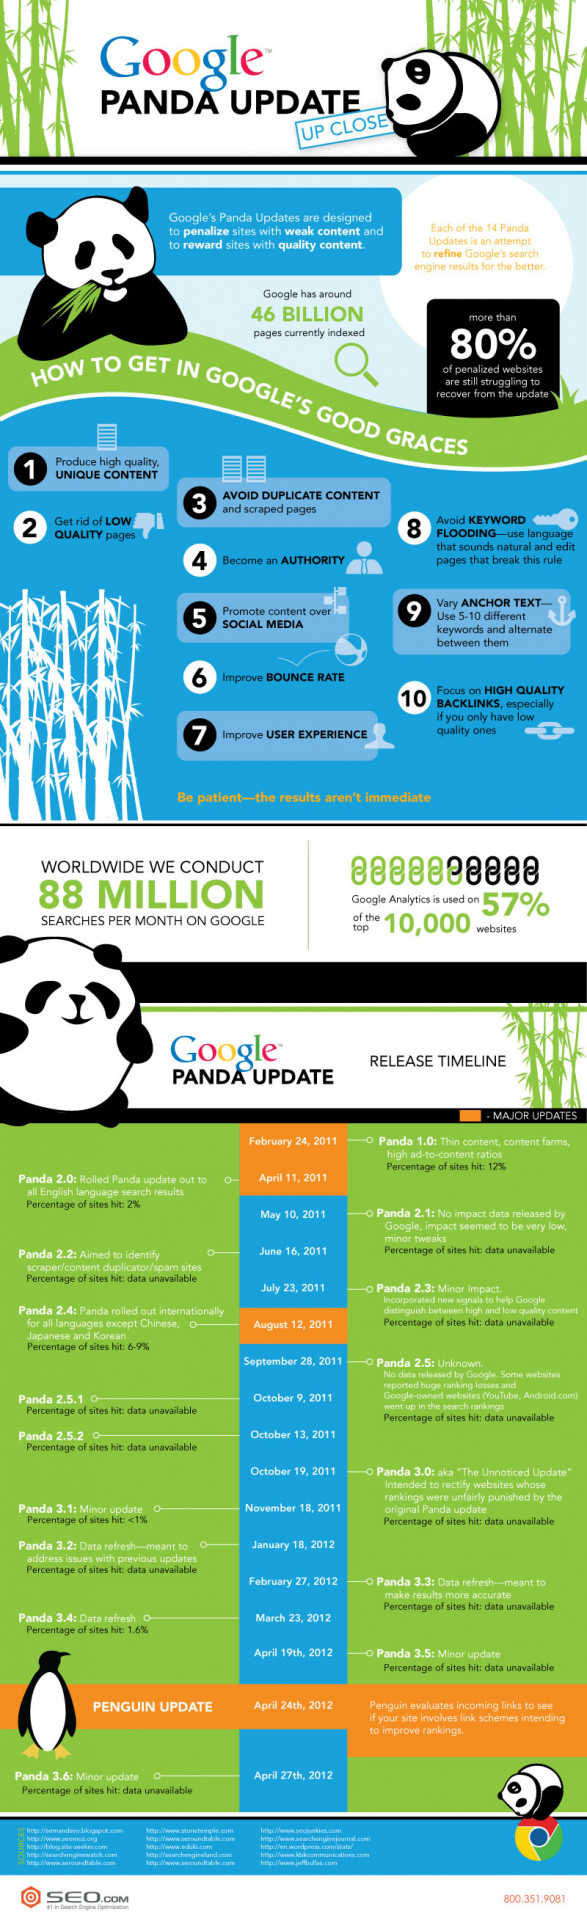 Panda Update: How to get in Google's good graces